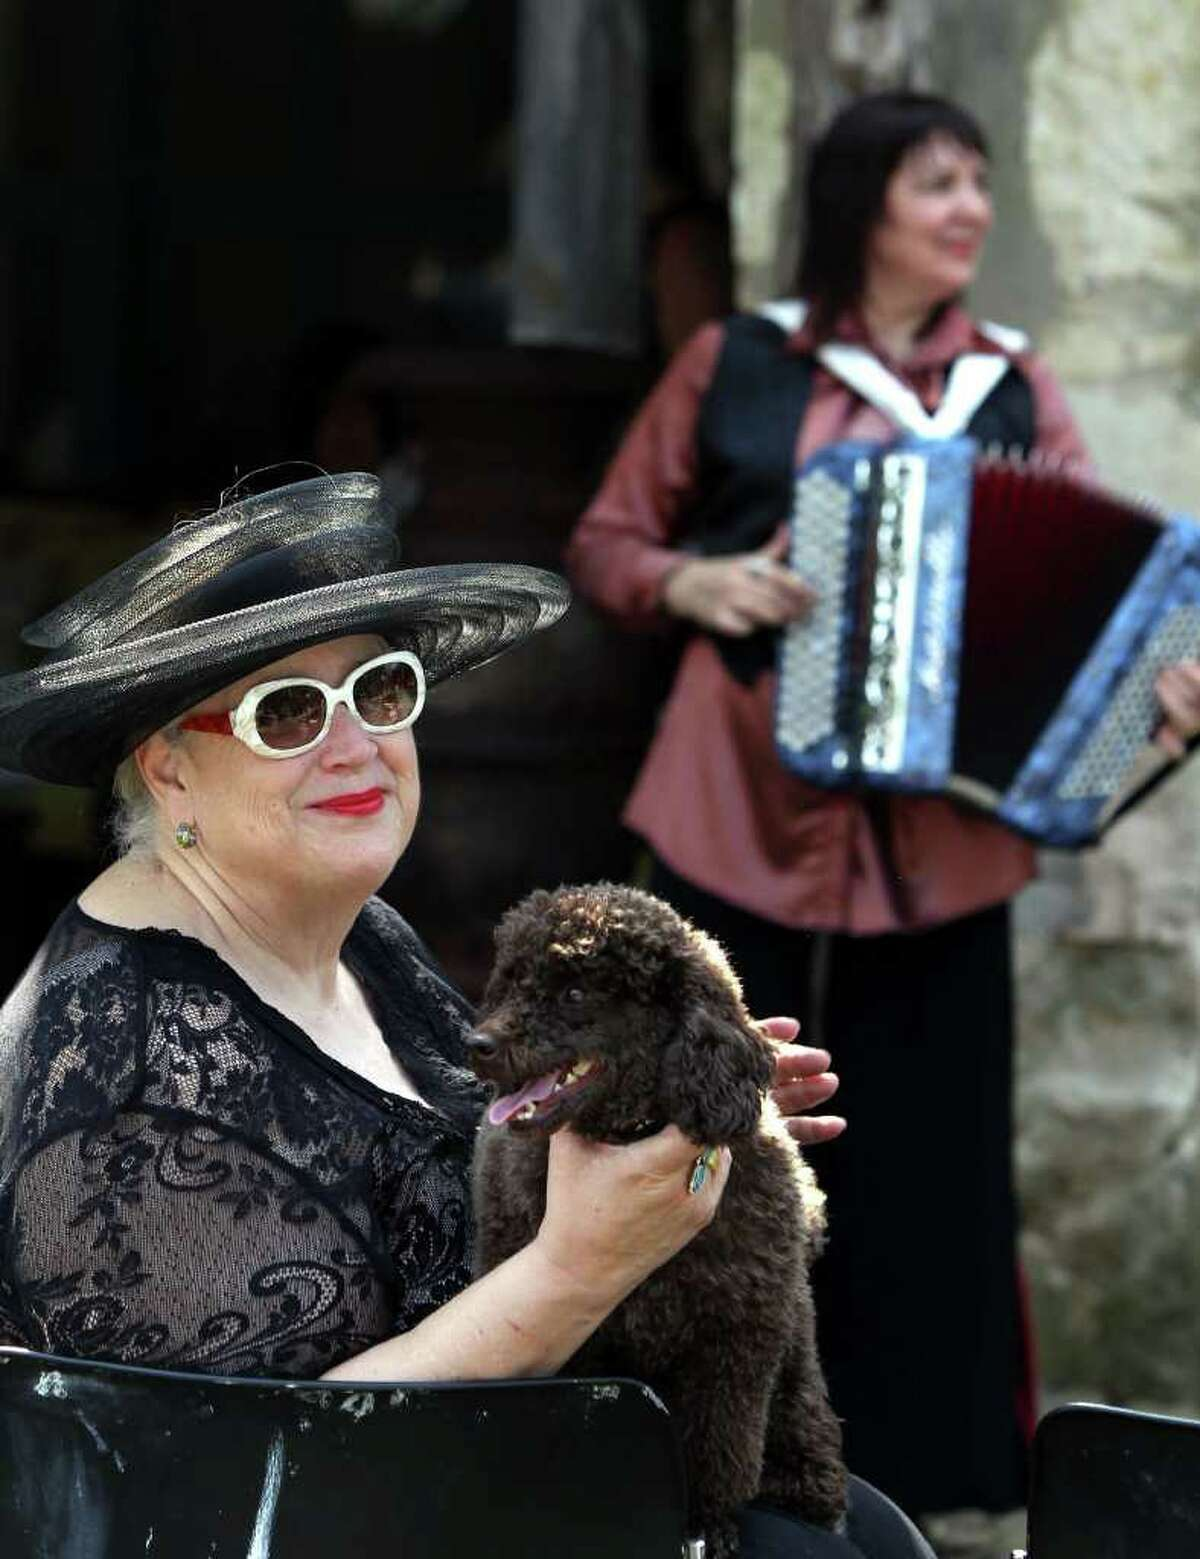 Bettie Ward holds her French poodle named Remember as an accordionist serenades the crowd at the San Antonio French Cultures Festival on Sunday. The event, which featured cuisine from San Antonio French restaurants, French wines and cultural demonstrations, was the opener for a month of French-based events.